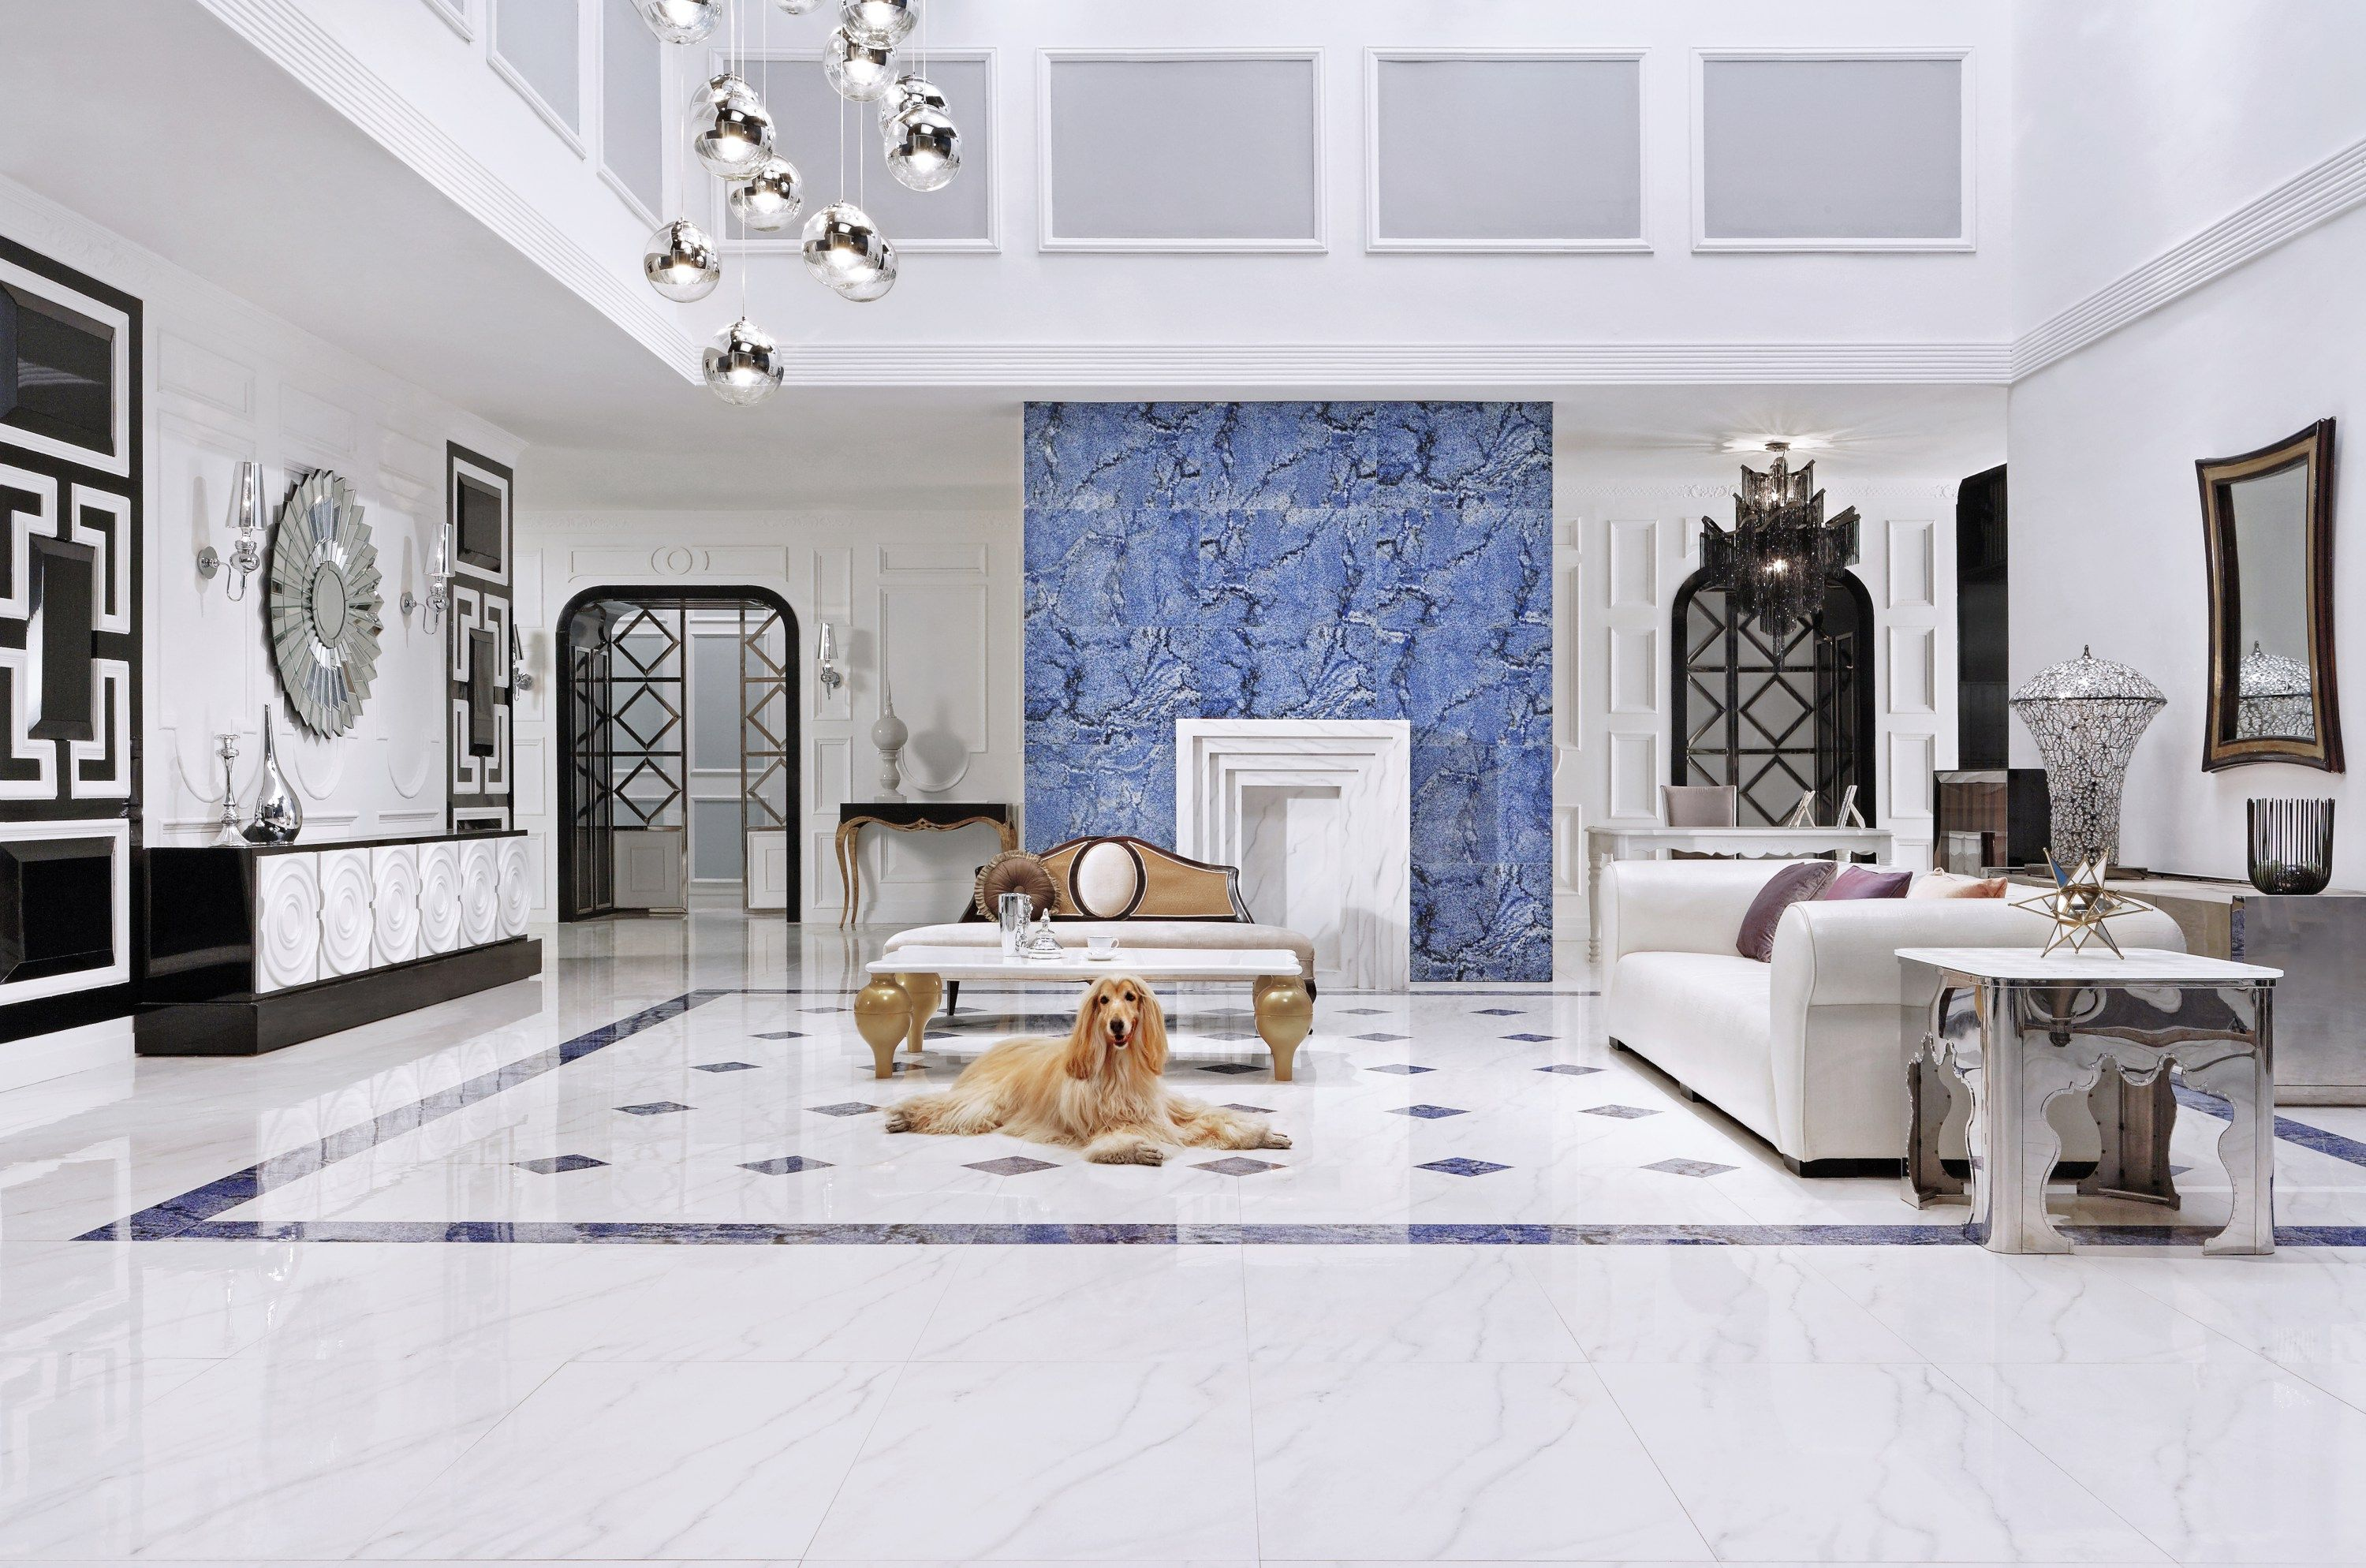 The last two months I have been spending a ton of time sourcing out tiles for a few jobs that I feel like an employee at the tile store :) One tile I have been sourcing is porcelain tile that looks like marble. I love this tile as you get the durabil...